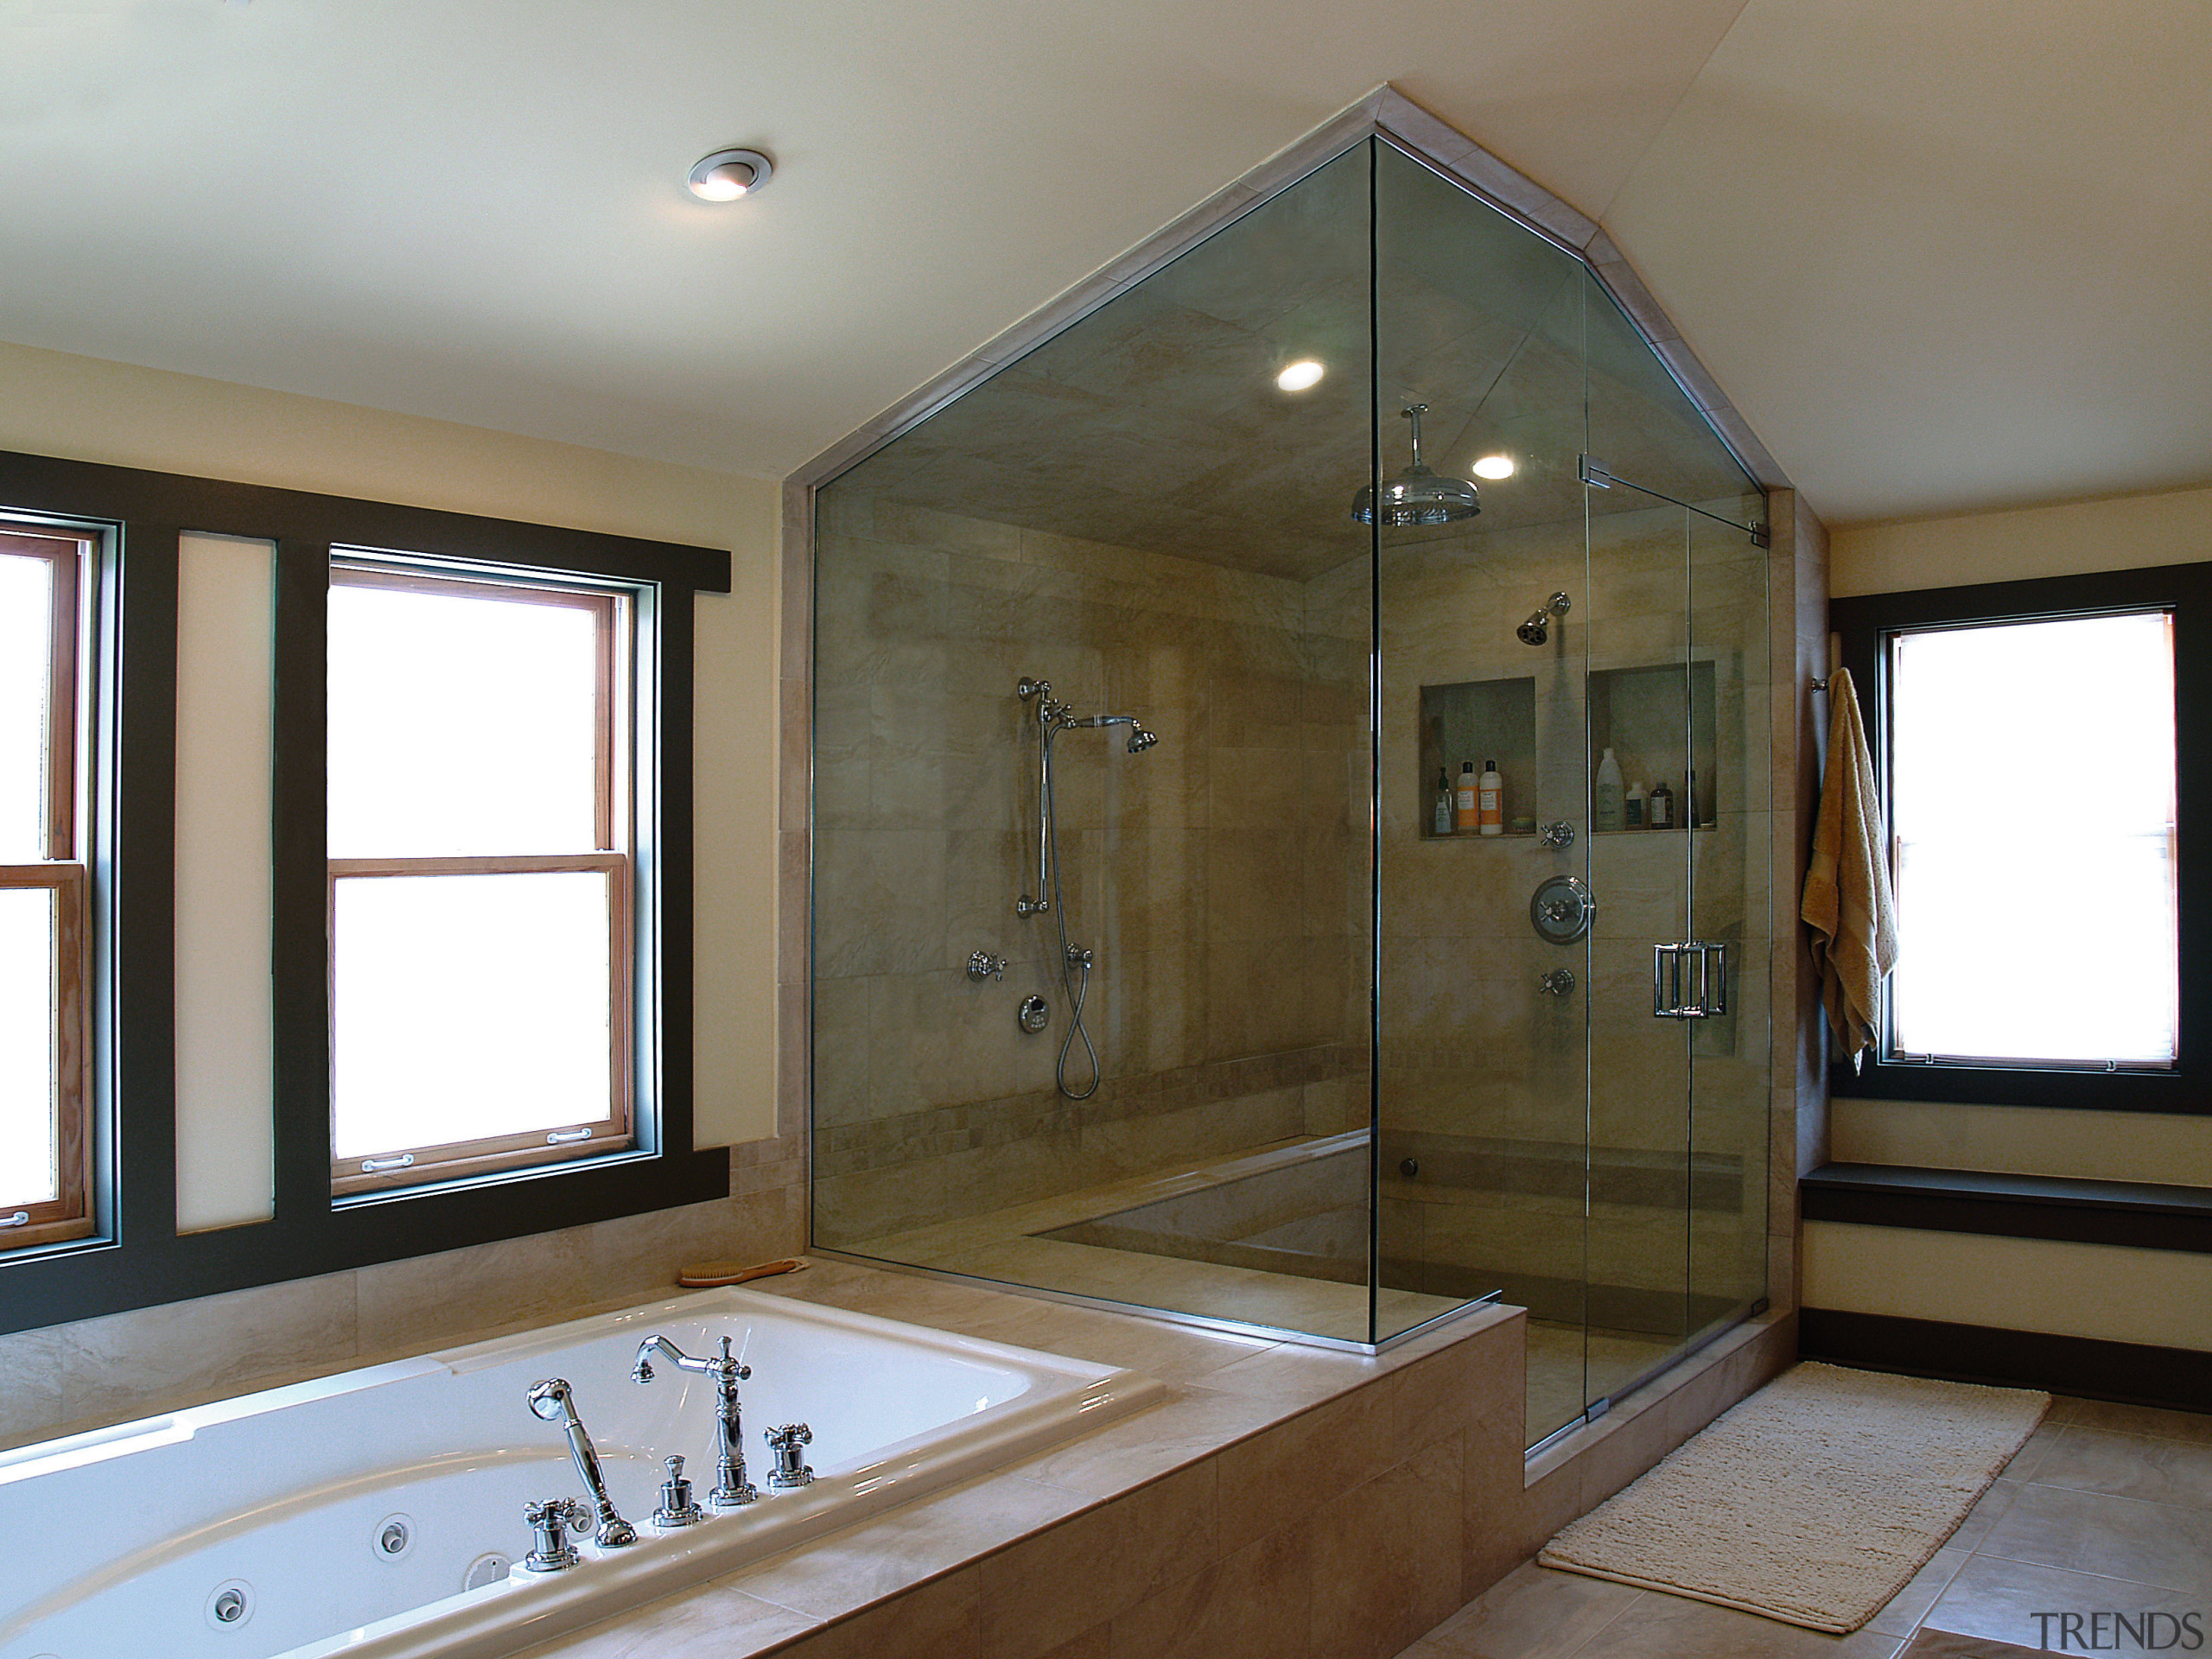 BathWorks Specializes in custom-designed shower enclouseres, and mirrors bathroom, bathtub, ceiling, estate, floor, home, interior design, real estate, room, window, gray, brown